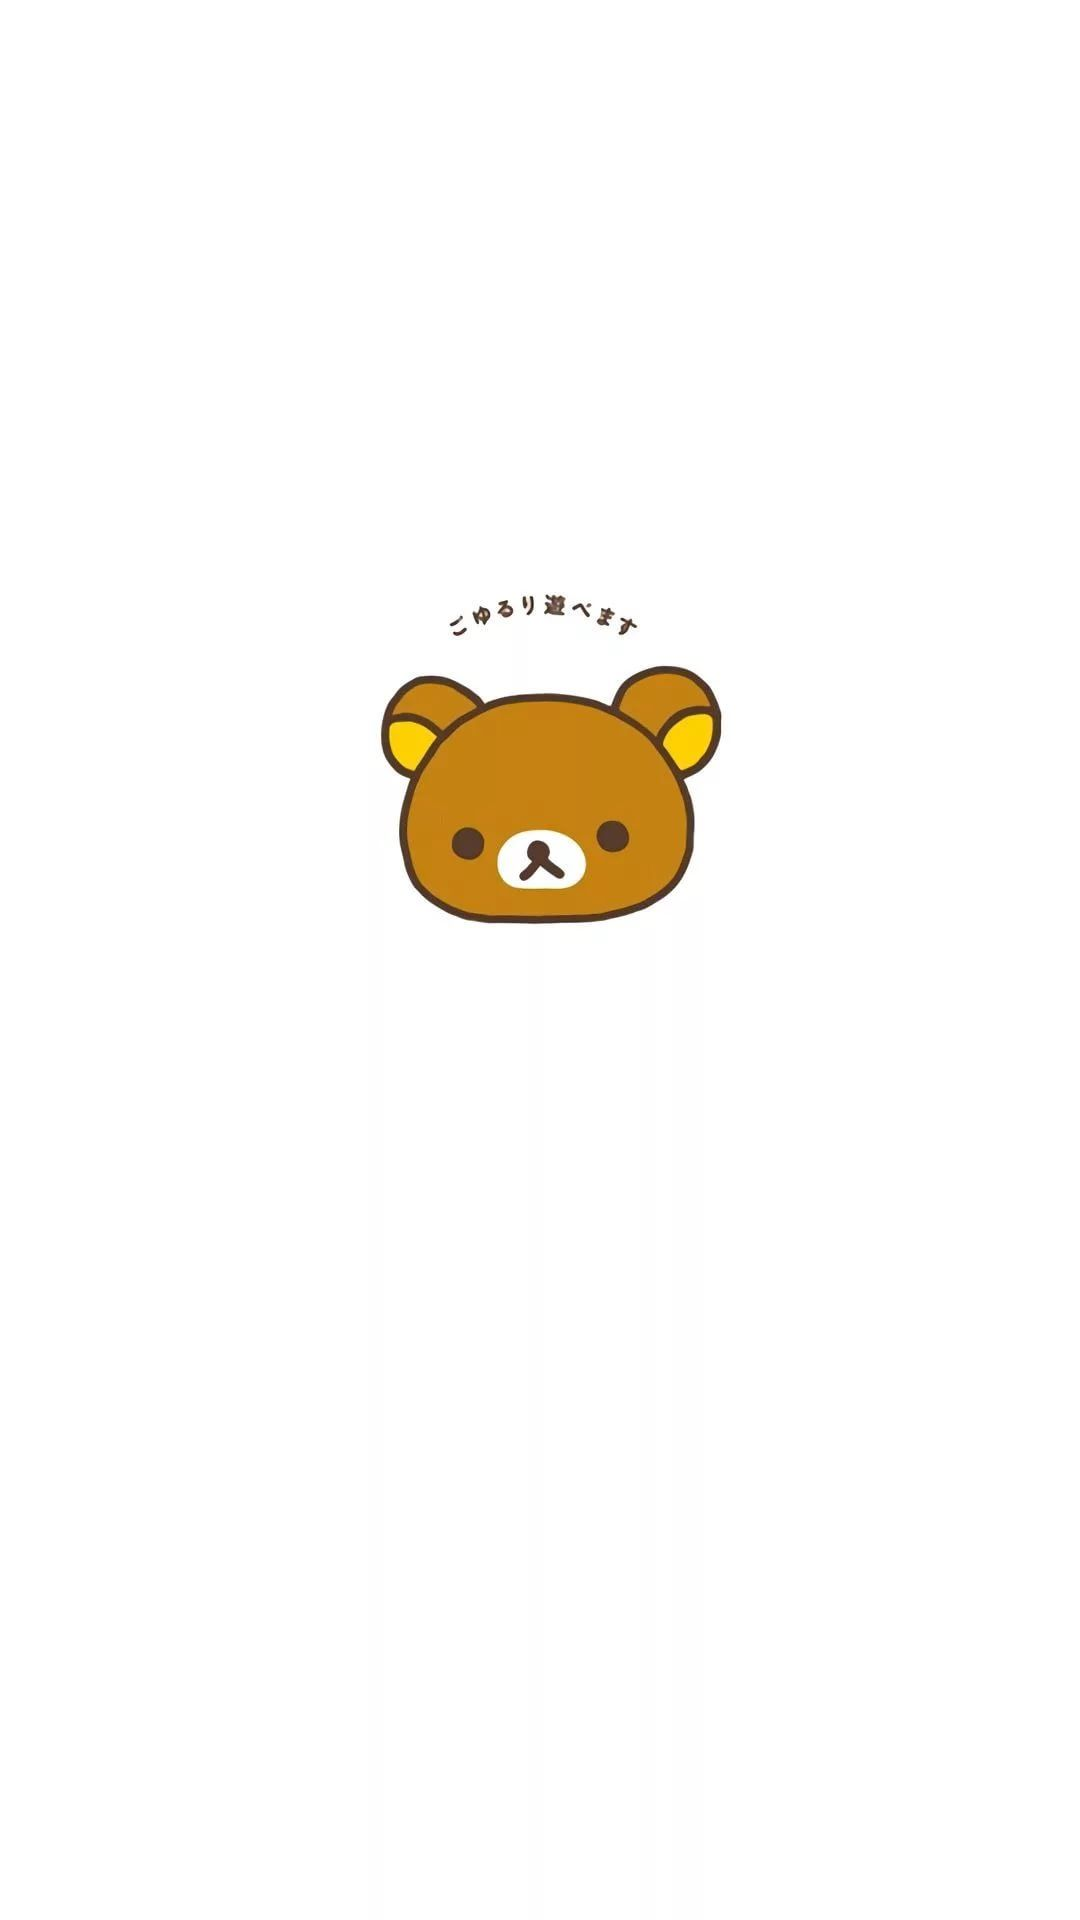 Rilakkuma wallpaper for android